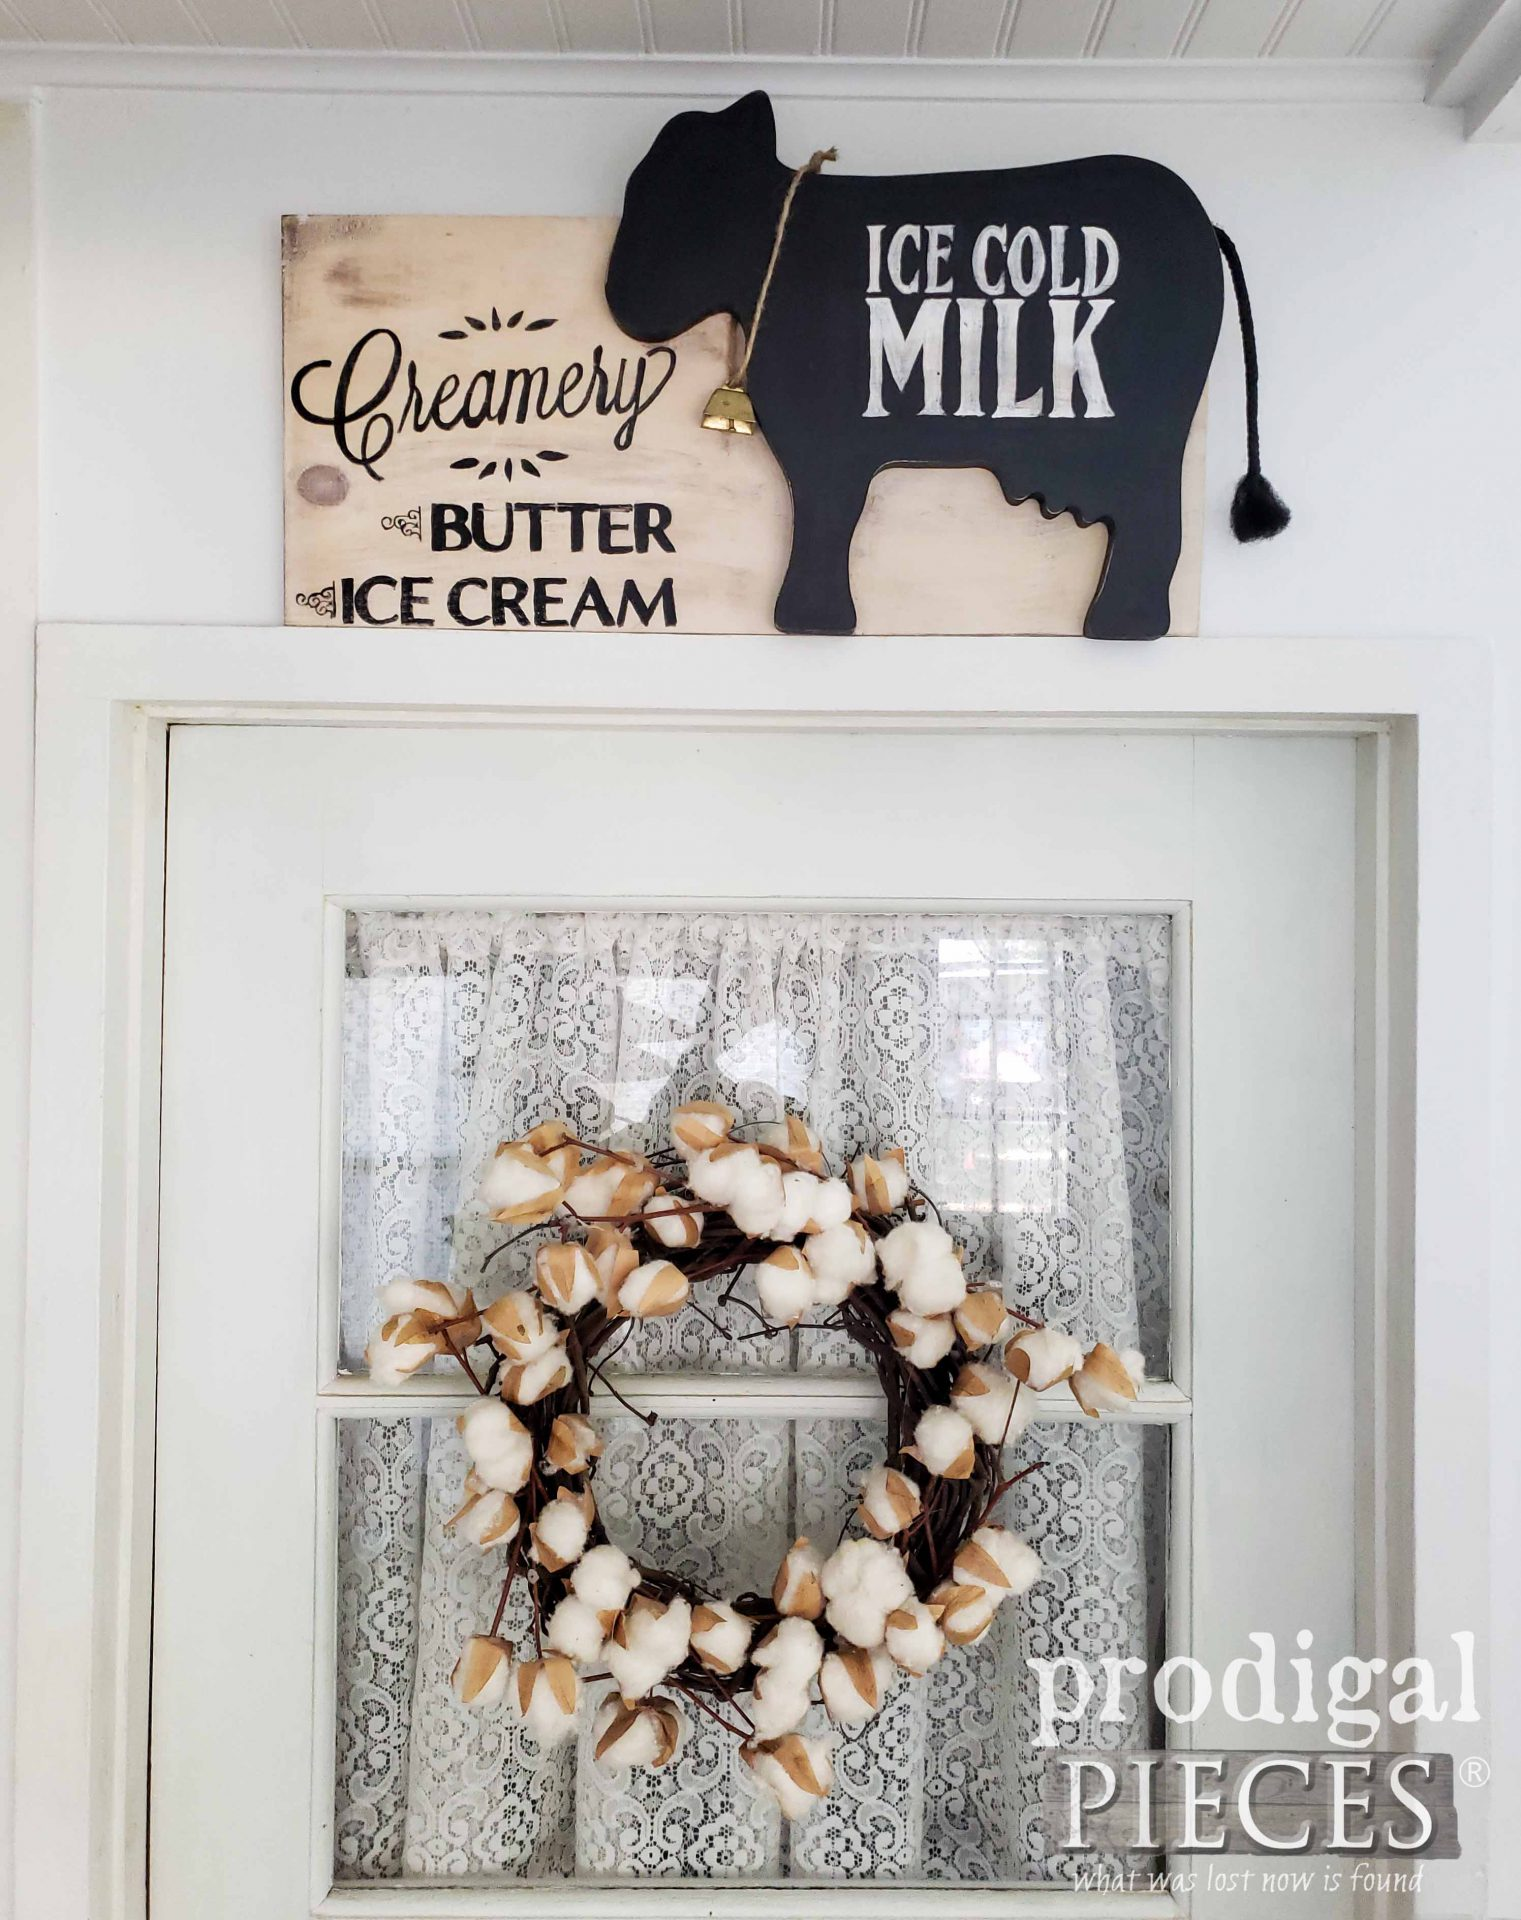 DIY Farmhouse Creamery Sign Created from Thrifted Finds by Larissa of Prodigal Pieces | prodigalpieces.com #prodigalpieces #farmhouse #home #homedecor #diy